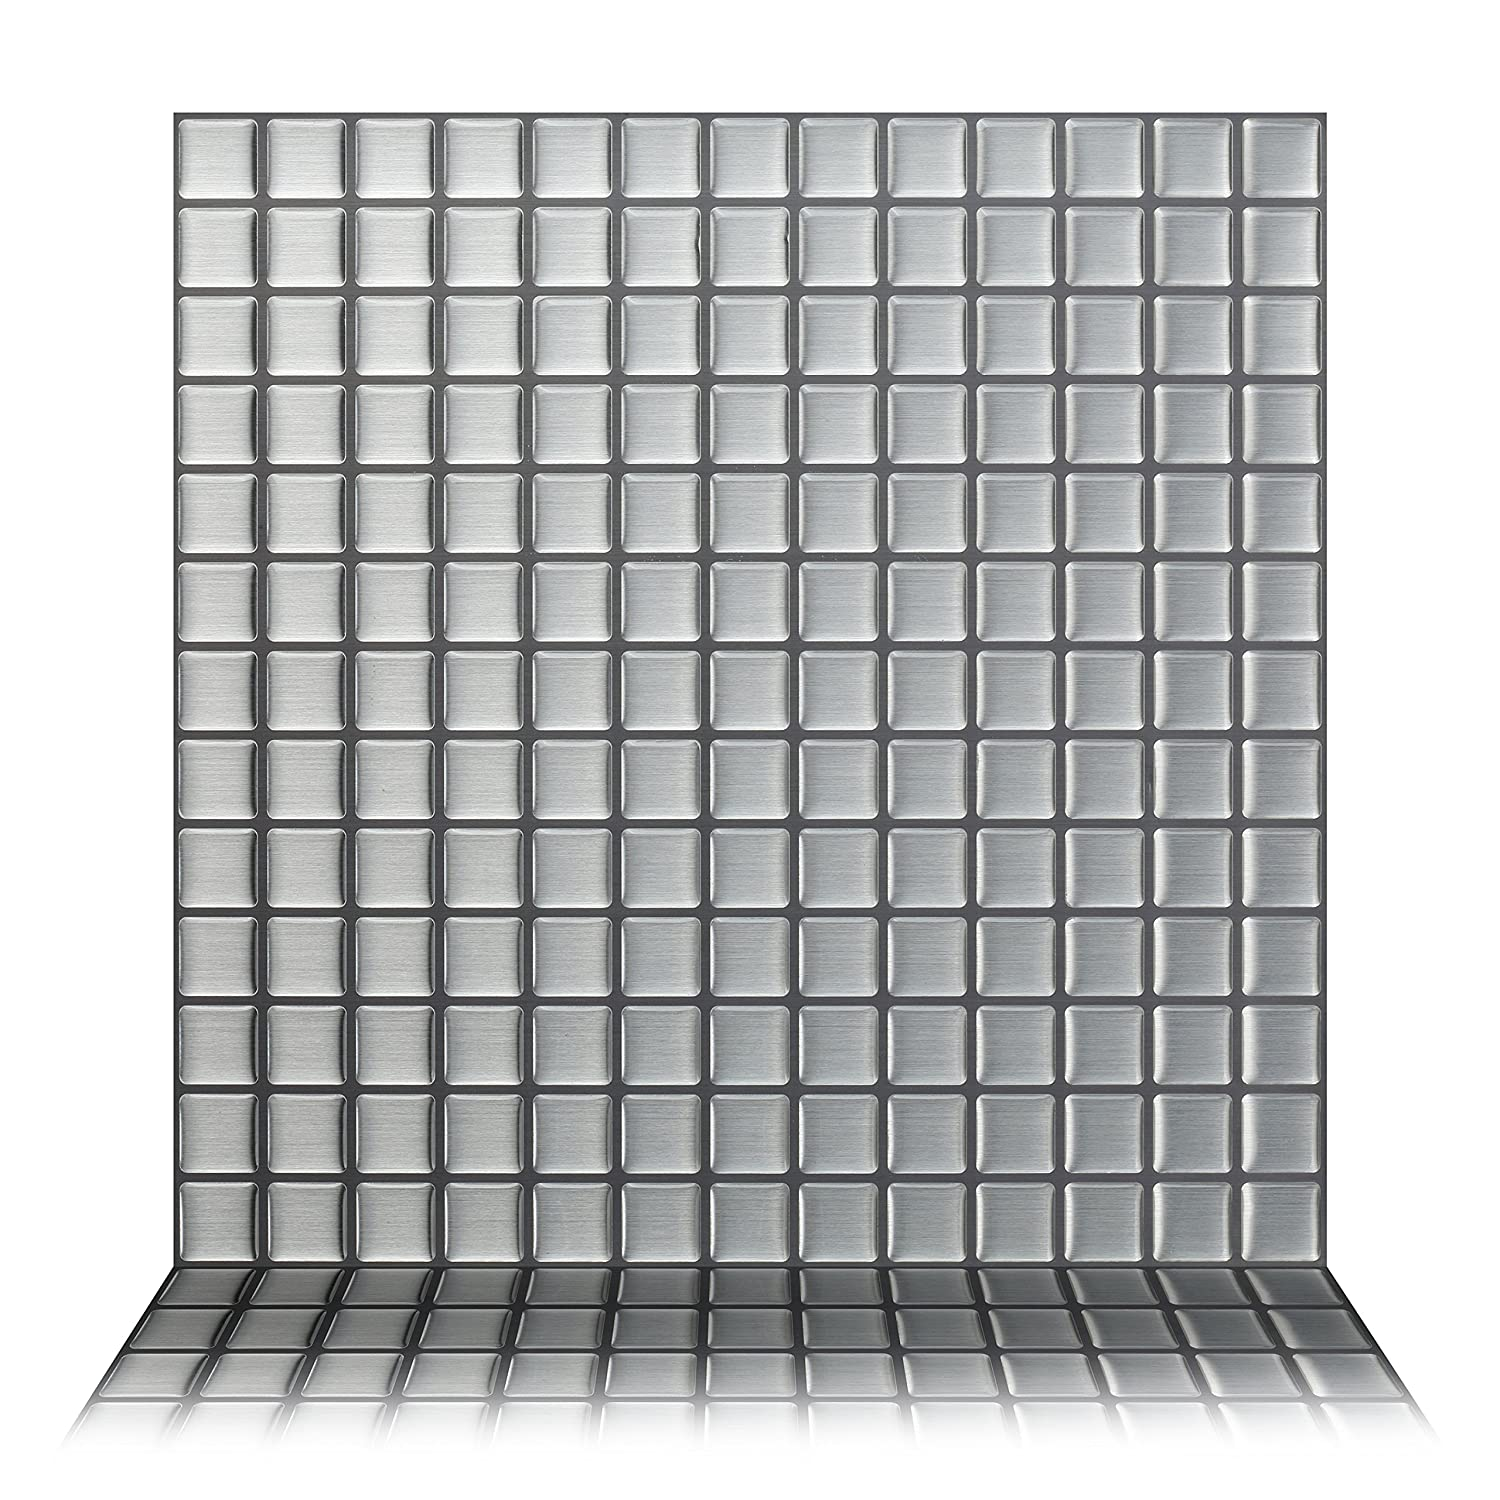 Tic Tac Tiles - Premium Anti Mold Peel and Stick Wall Tile Backsplash in Stainless Square (10 Tiles)